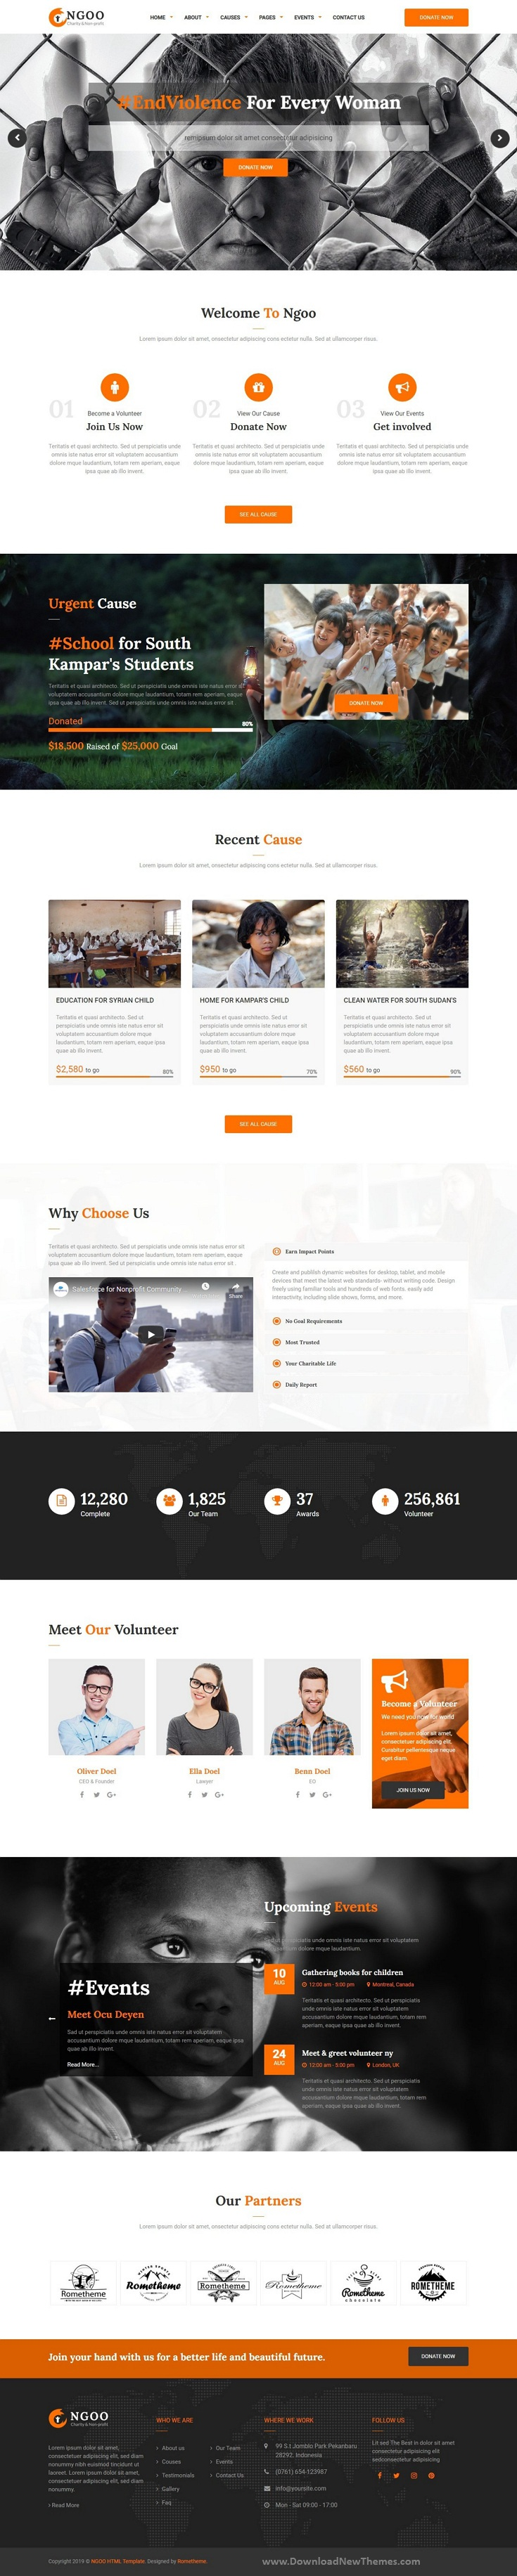 Charity, Non-profit, and Fundraising Website Template